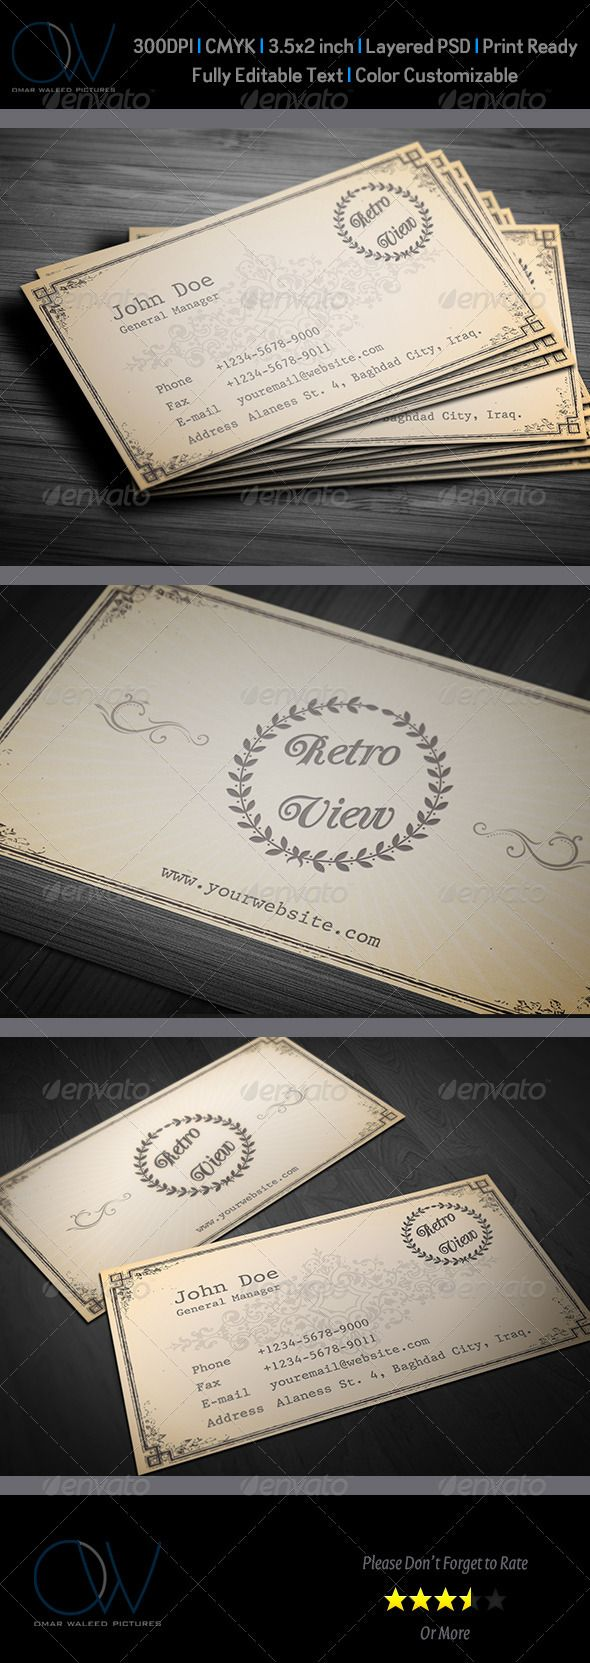 93 Best 80 Awesome Vintage Business Cards Images On Pinterest